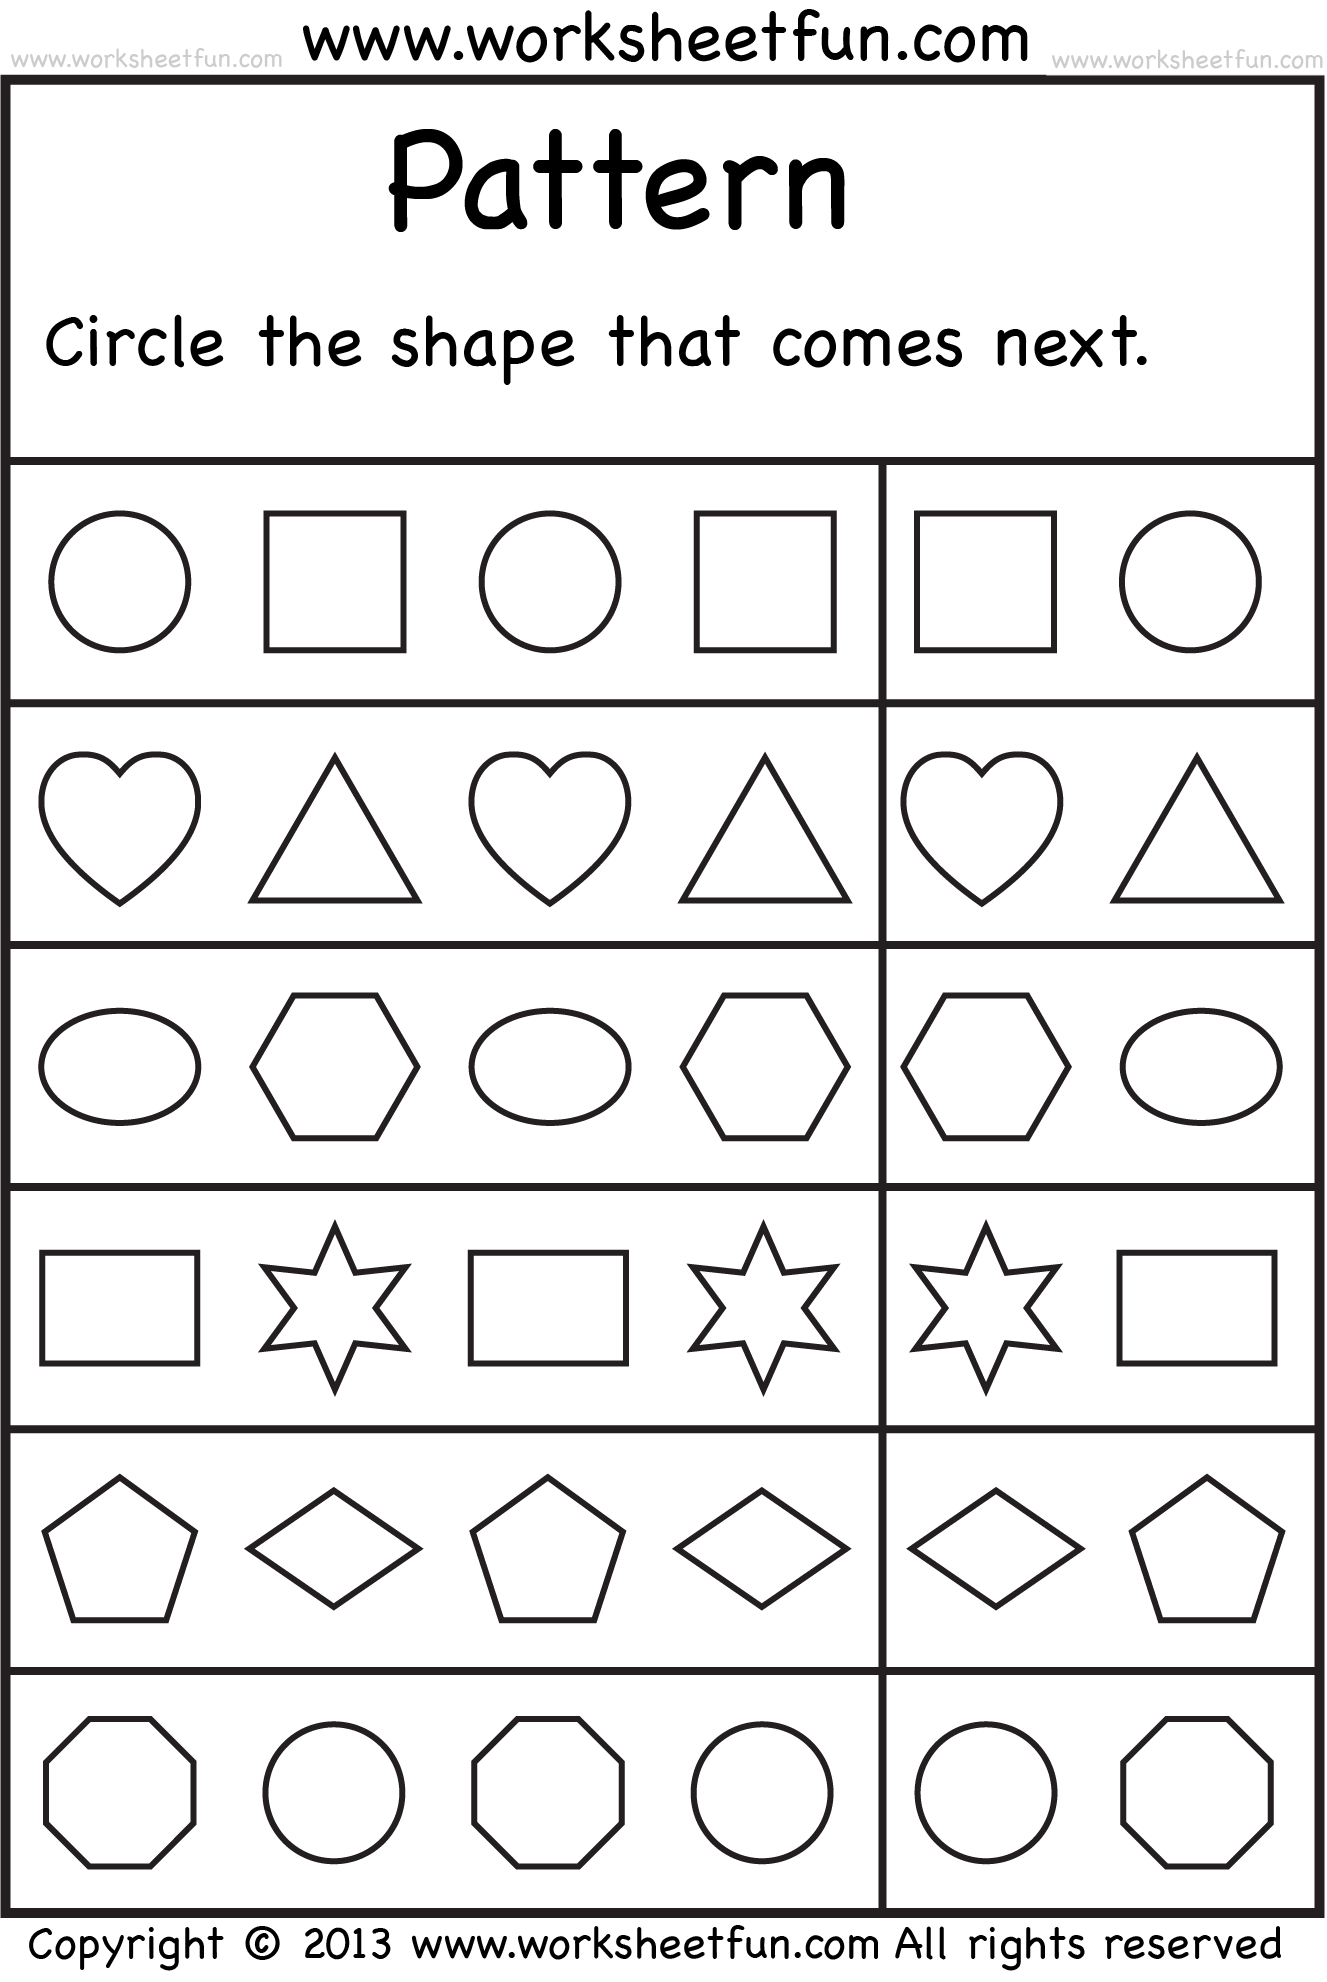 Aldiablosus  Remarkable  Images About School Worksheets On Pinterest  Number Words  With Inspiring  Images About School Worksheets On Pinterest  Number Words Alphabet Worksheets And Free Printable Kindergarten Worksheets With Nice Fun Time Worksheets Also Mental Maths Worksheets For Grade  In Addition Italian Worksheets For Kids And Geometric Shapes Worksheets For Kindergarten As Well As Number Patterns Worksheets Grade  Additionally Dividing By  Worksheet From Pinterestcom With Aldiablosus  Inspiring  Images About School Worksheets On Pinterest  Number Words  With Nice  Images About School Worksheets On Pinterest  Number Words Alphabet Worksheets And Free Printable Kindergarten Worksheets And Remarkable Fun Time Worksheets Also Mental Maths Worksheets For Grade  In Addition Italian Worksheets For Kids From Pinterestcom